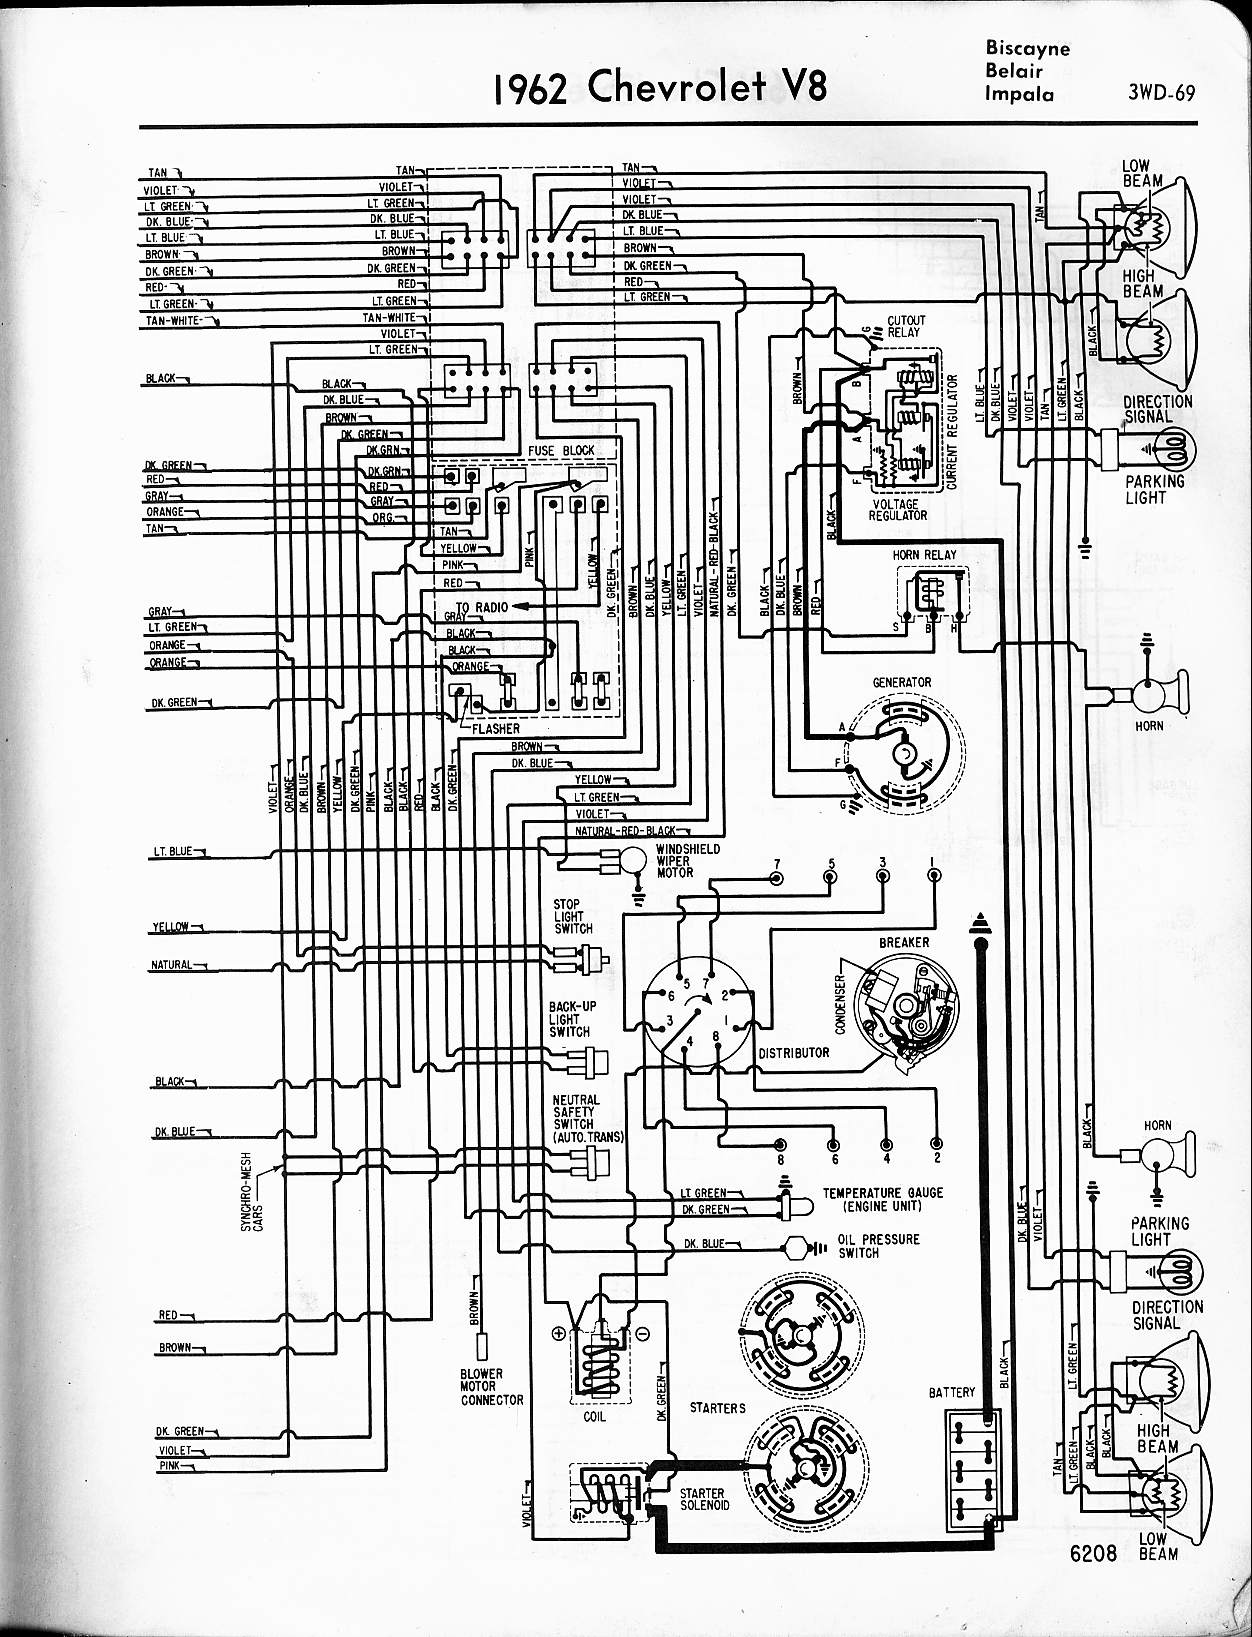 57 65 chevy wiring diagrams rh oldcarmanualproject com 67 Mustang Wiring Diagram 67 Mustang Wiring Diagram